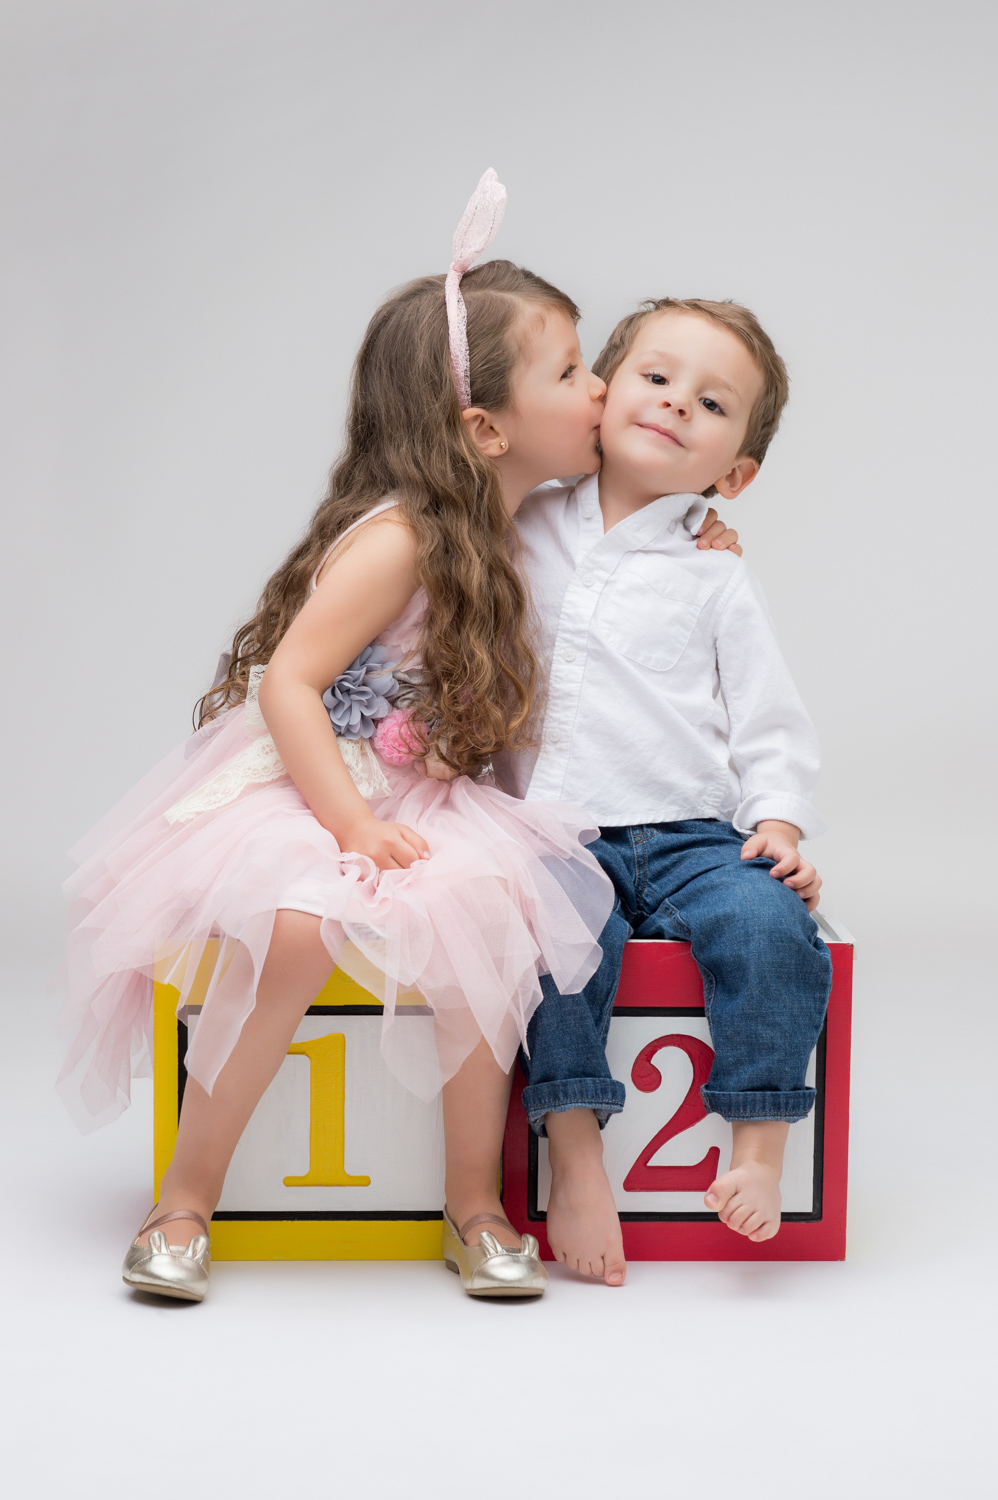 Older sister kisses her little brother on the cheek.